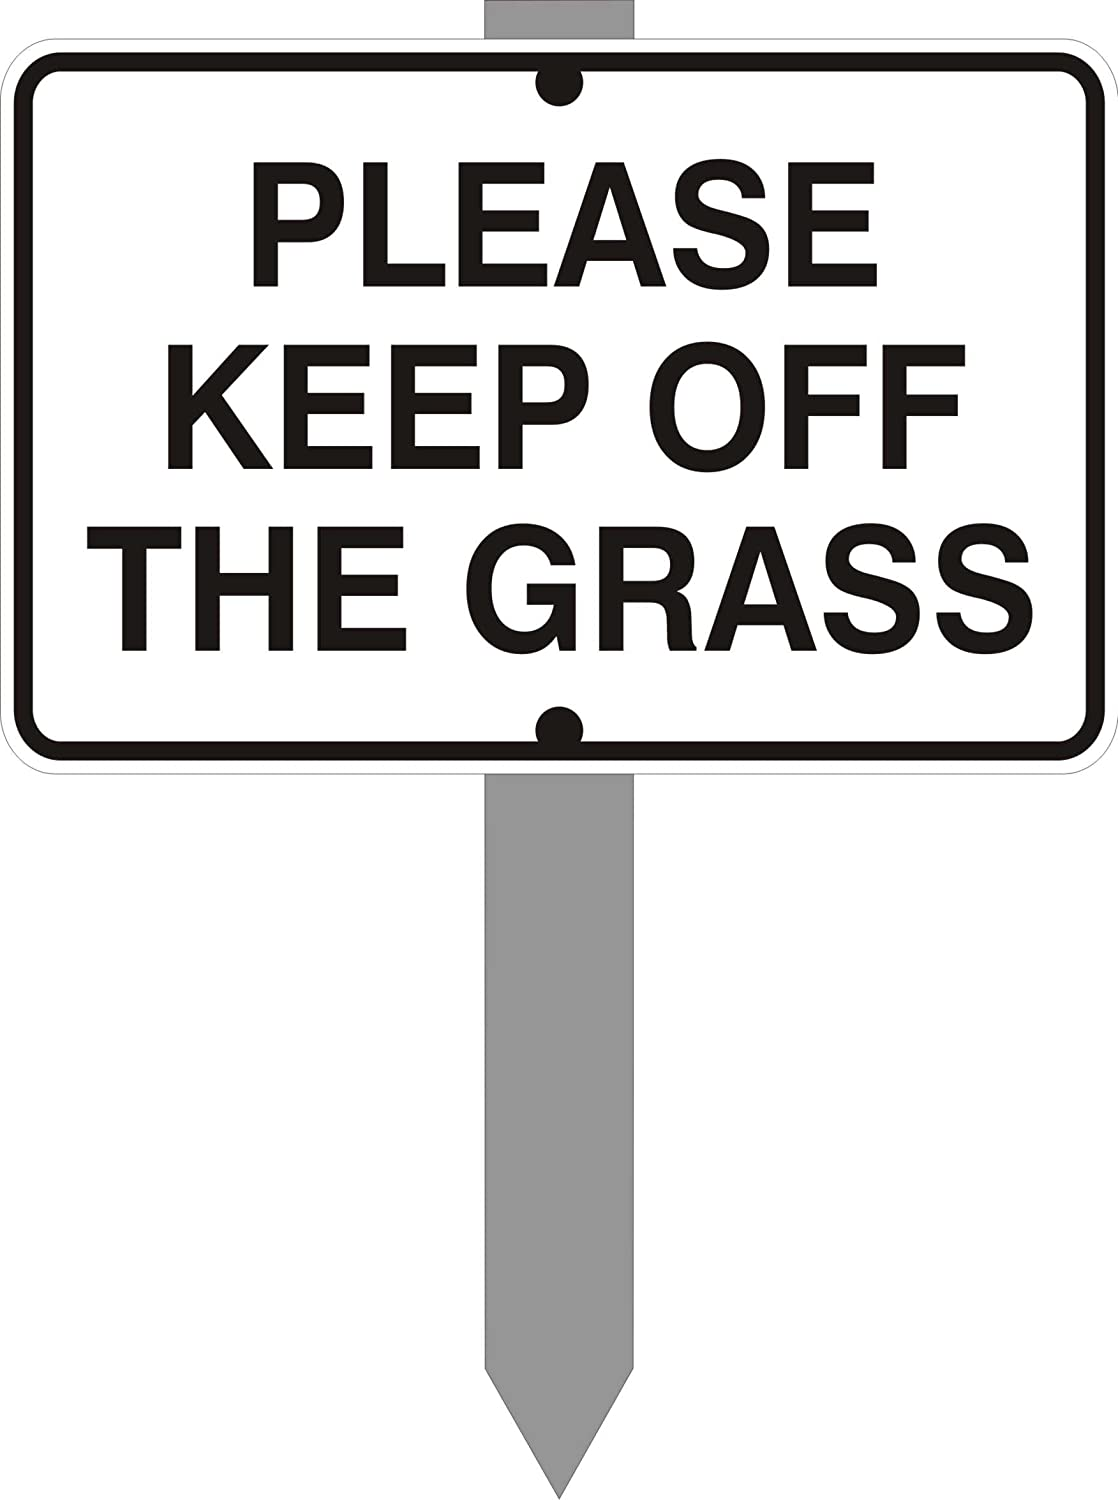 CMW Keep off the grass sign - 6